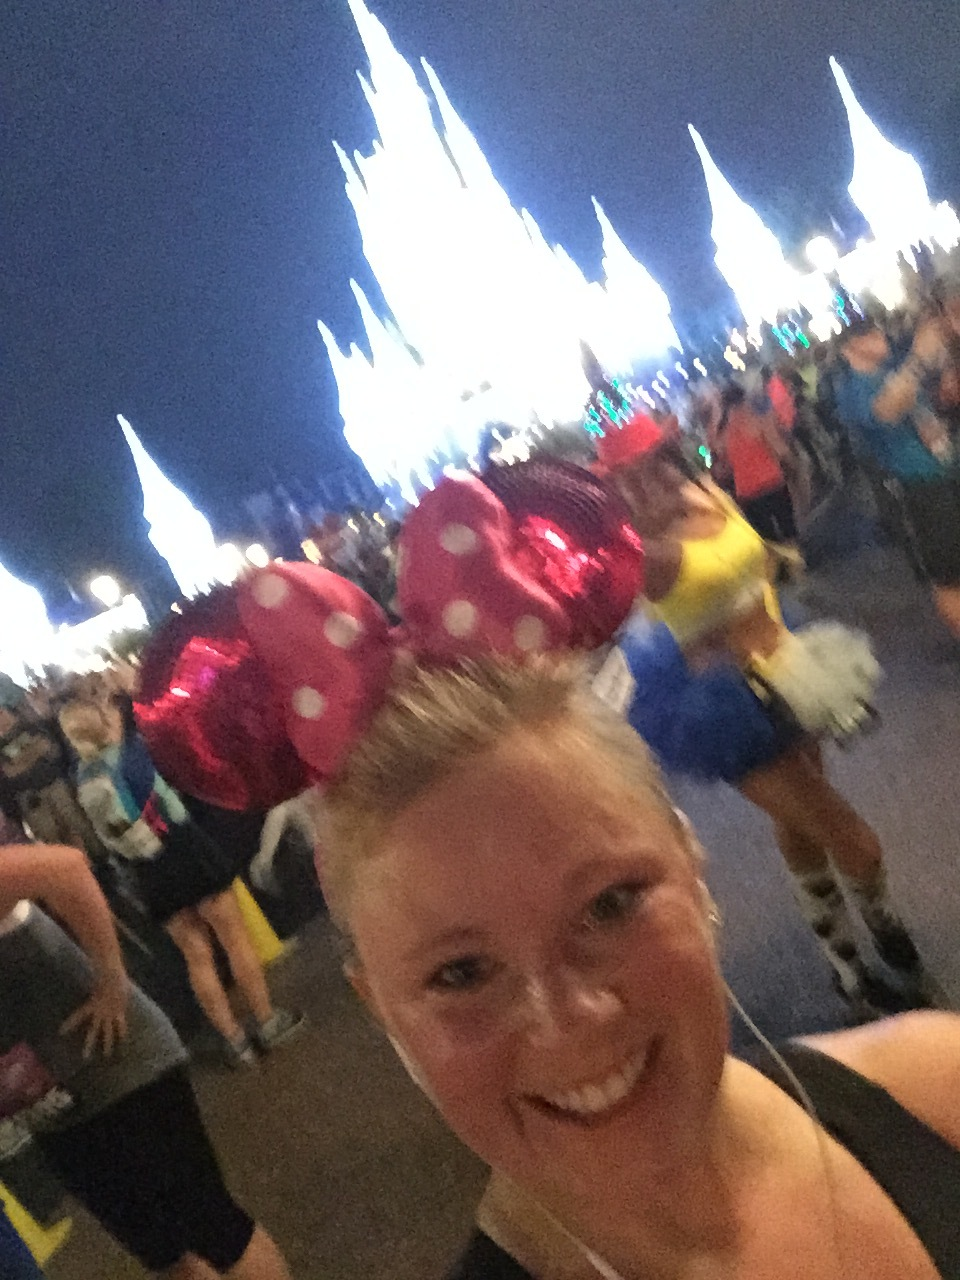 This was my quick attempt to take a good photo of myself in Magic Kingdom, but clearly my mid- stride selfie skills are not really skills. Keep in mind this is only 6:15am and I was DYING of heat and humidity already!